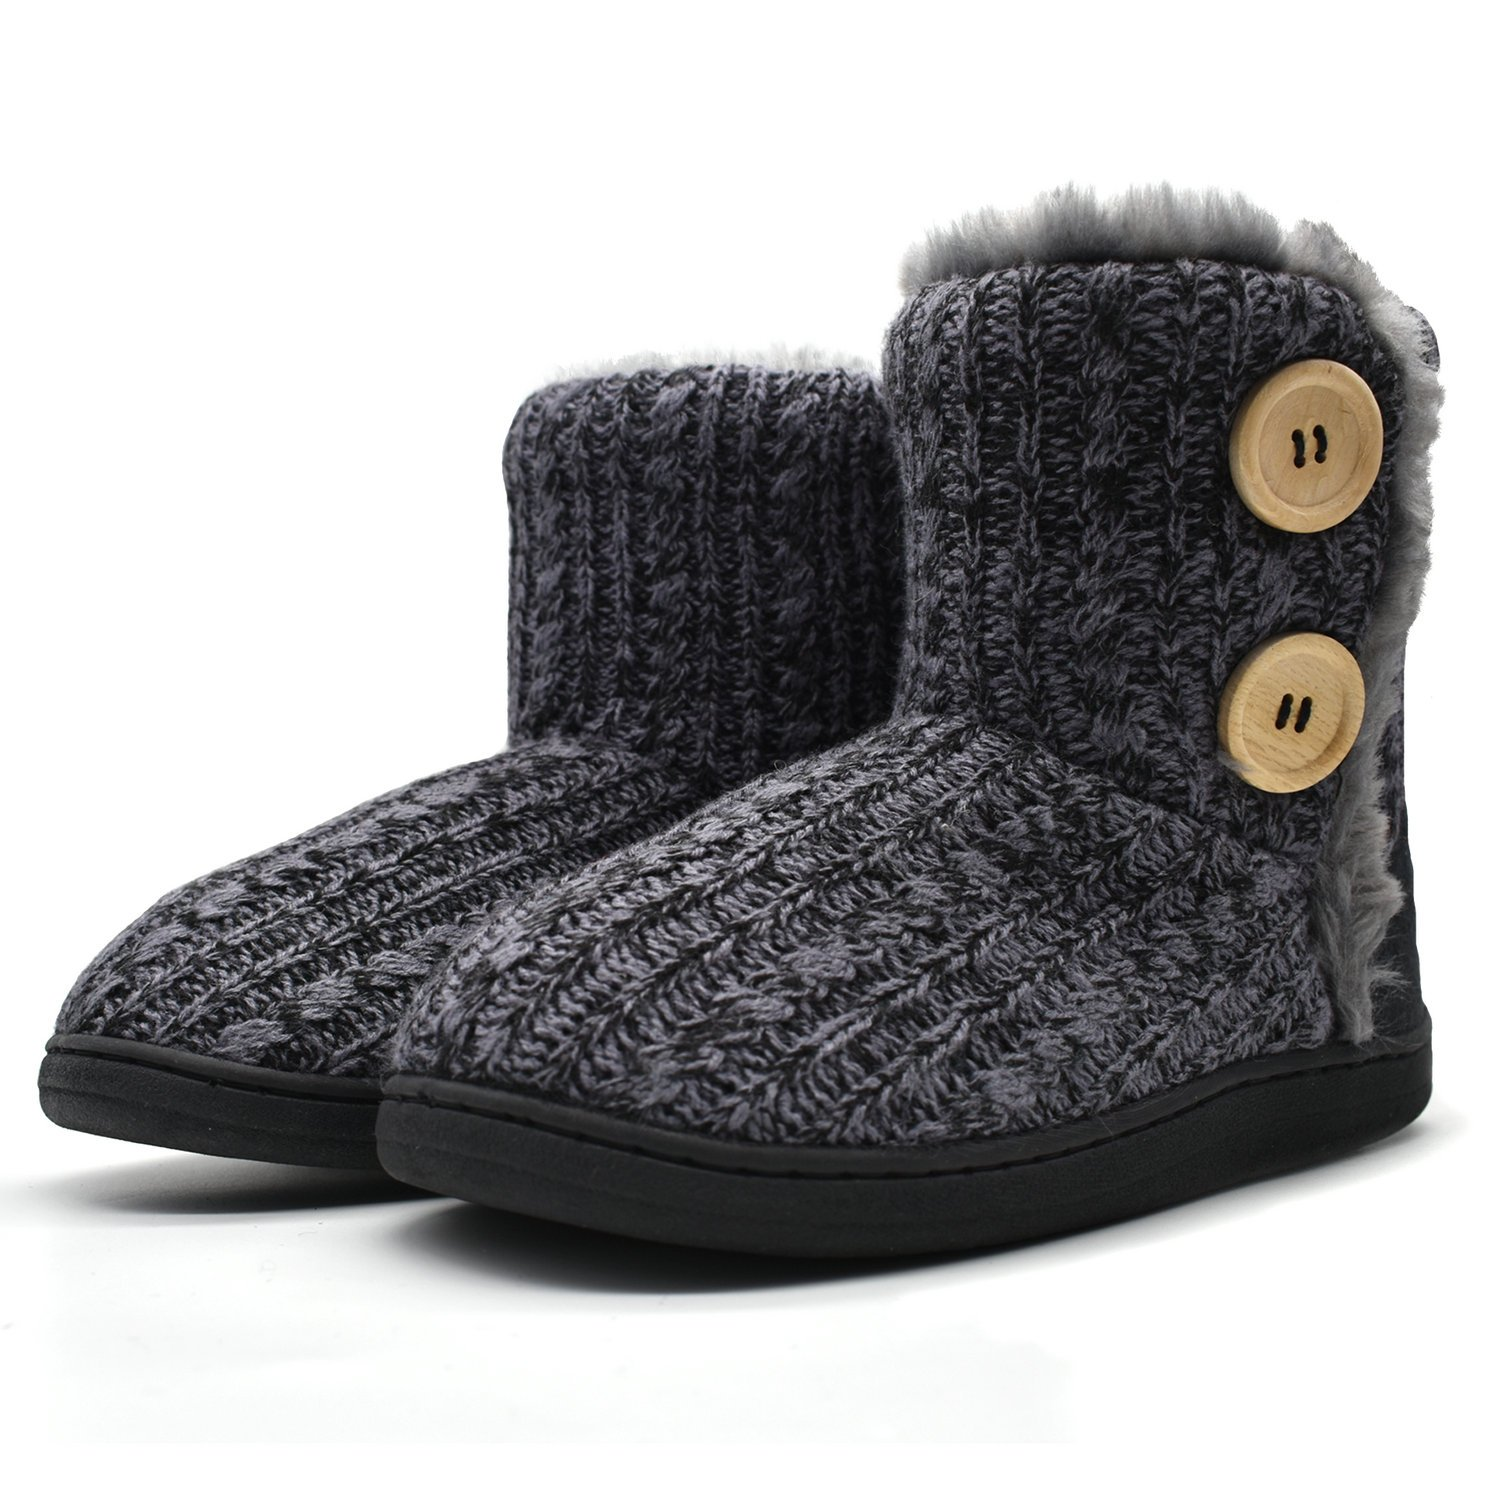 ONCAI Fluffy Faux Fur Slipper Boots for Women Soft Cozy Memory Foam Midcalf Booties Indoor House Pull on Shoes